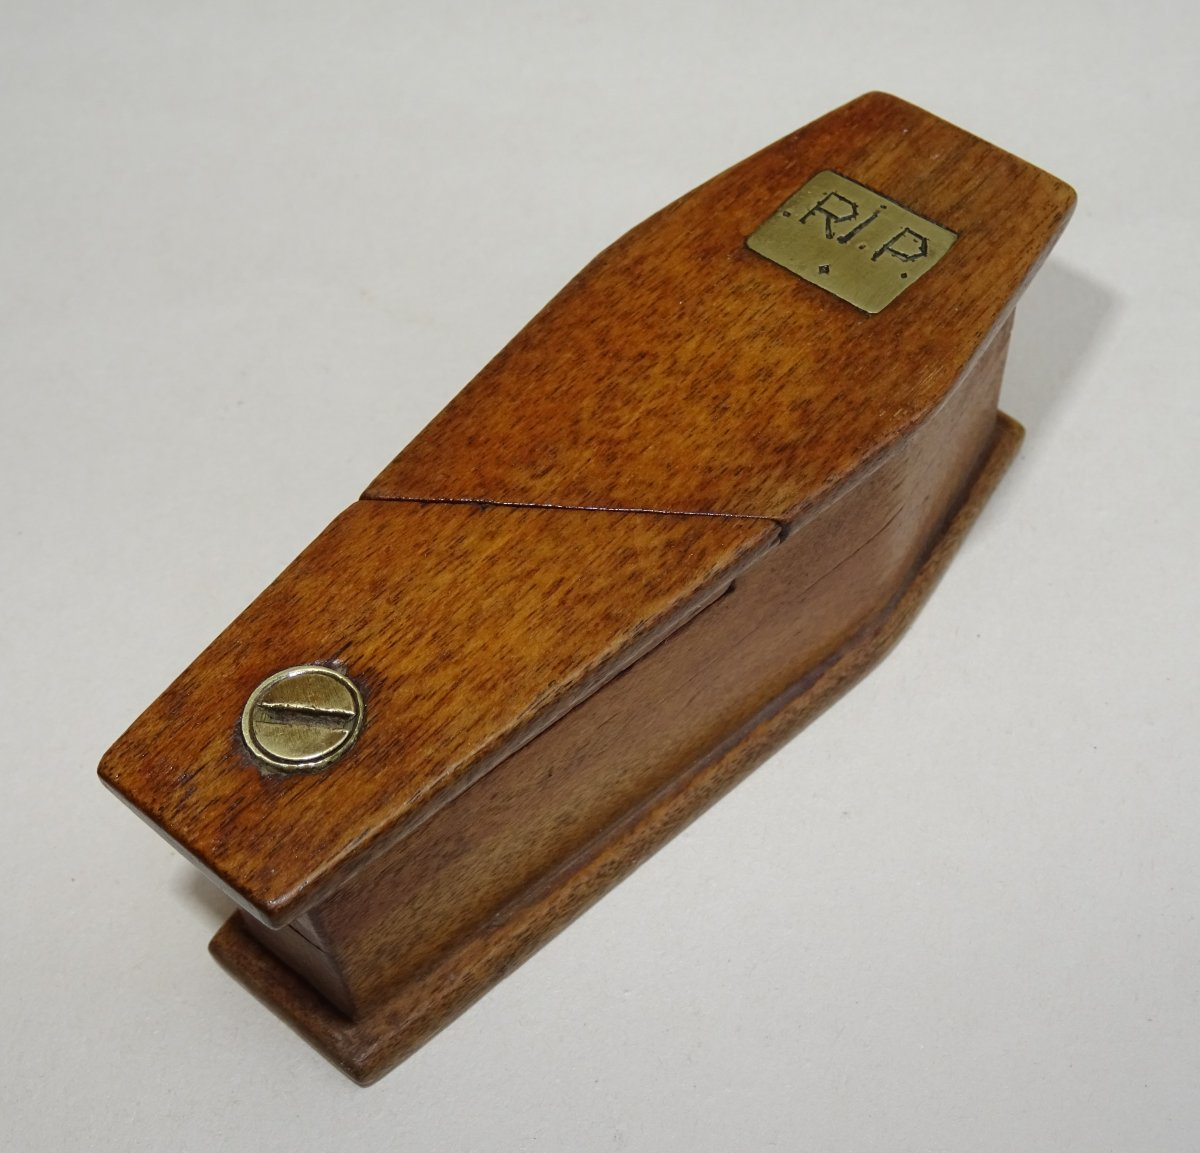 Coffin Shaped Snuffbox - Rest In Peace